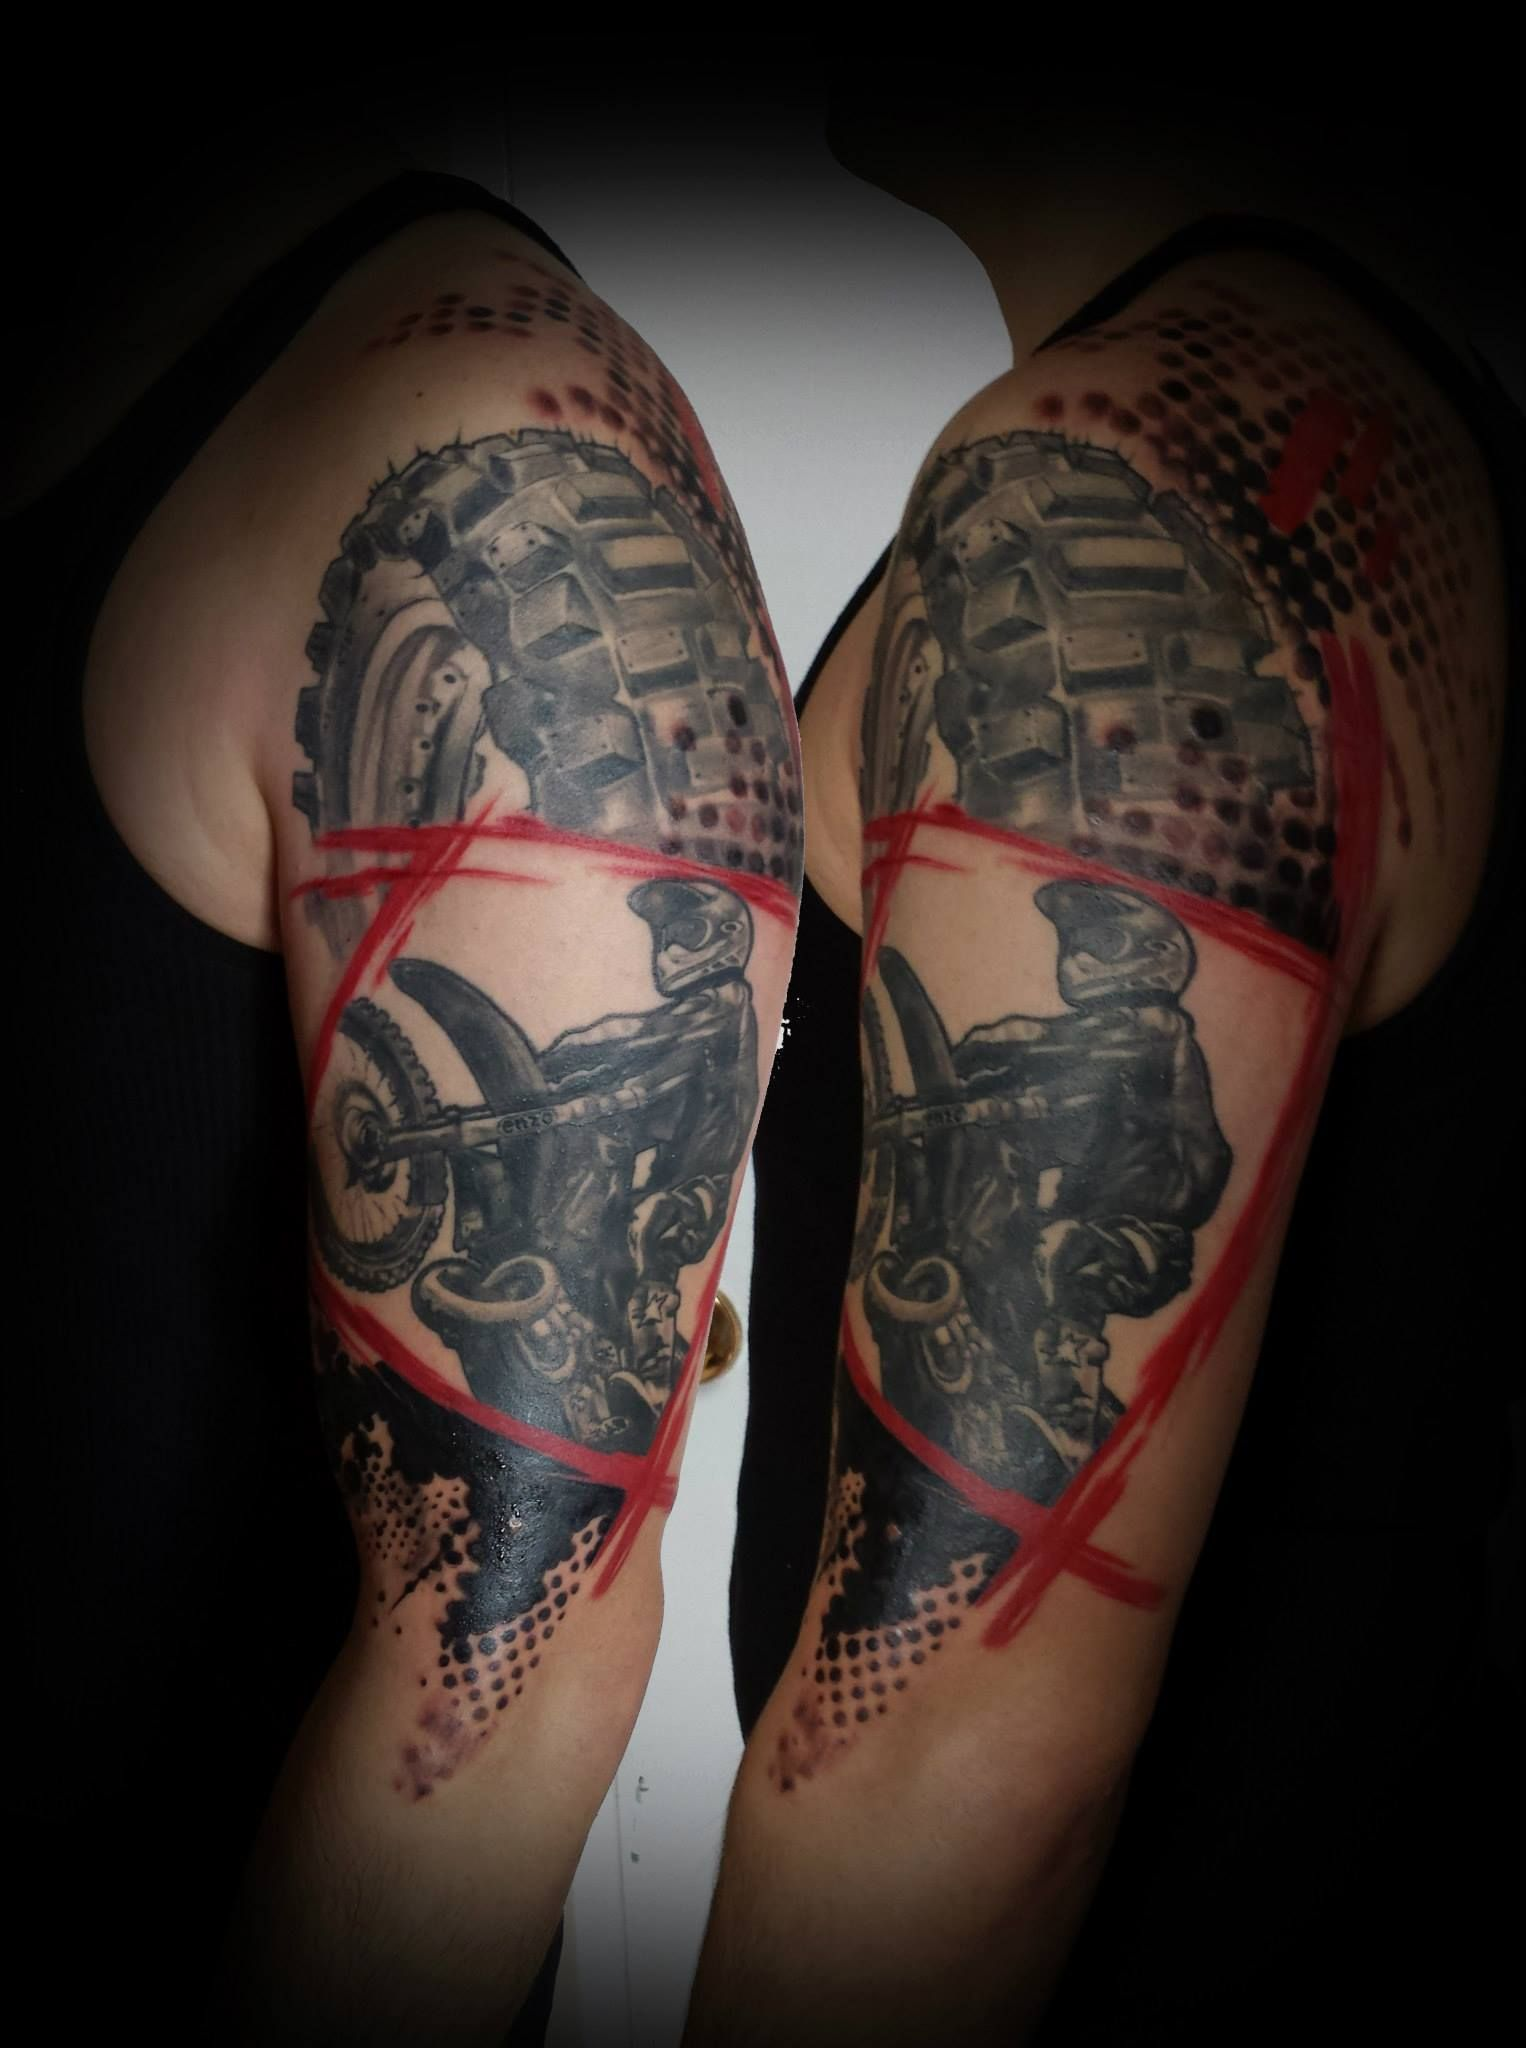 chronic ink tattoo toronto tattoo dirt bike  sleeve  csaba trash polka tattoos